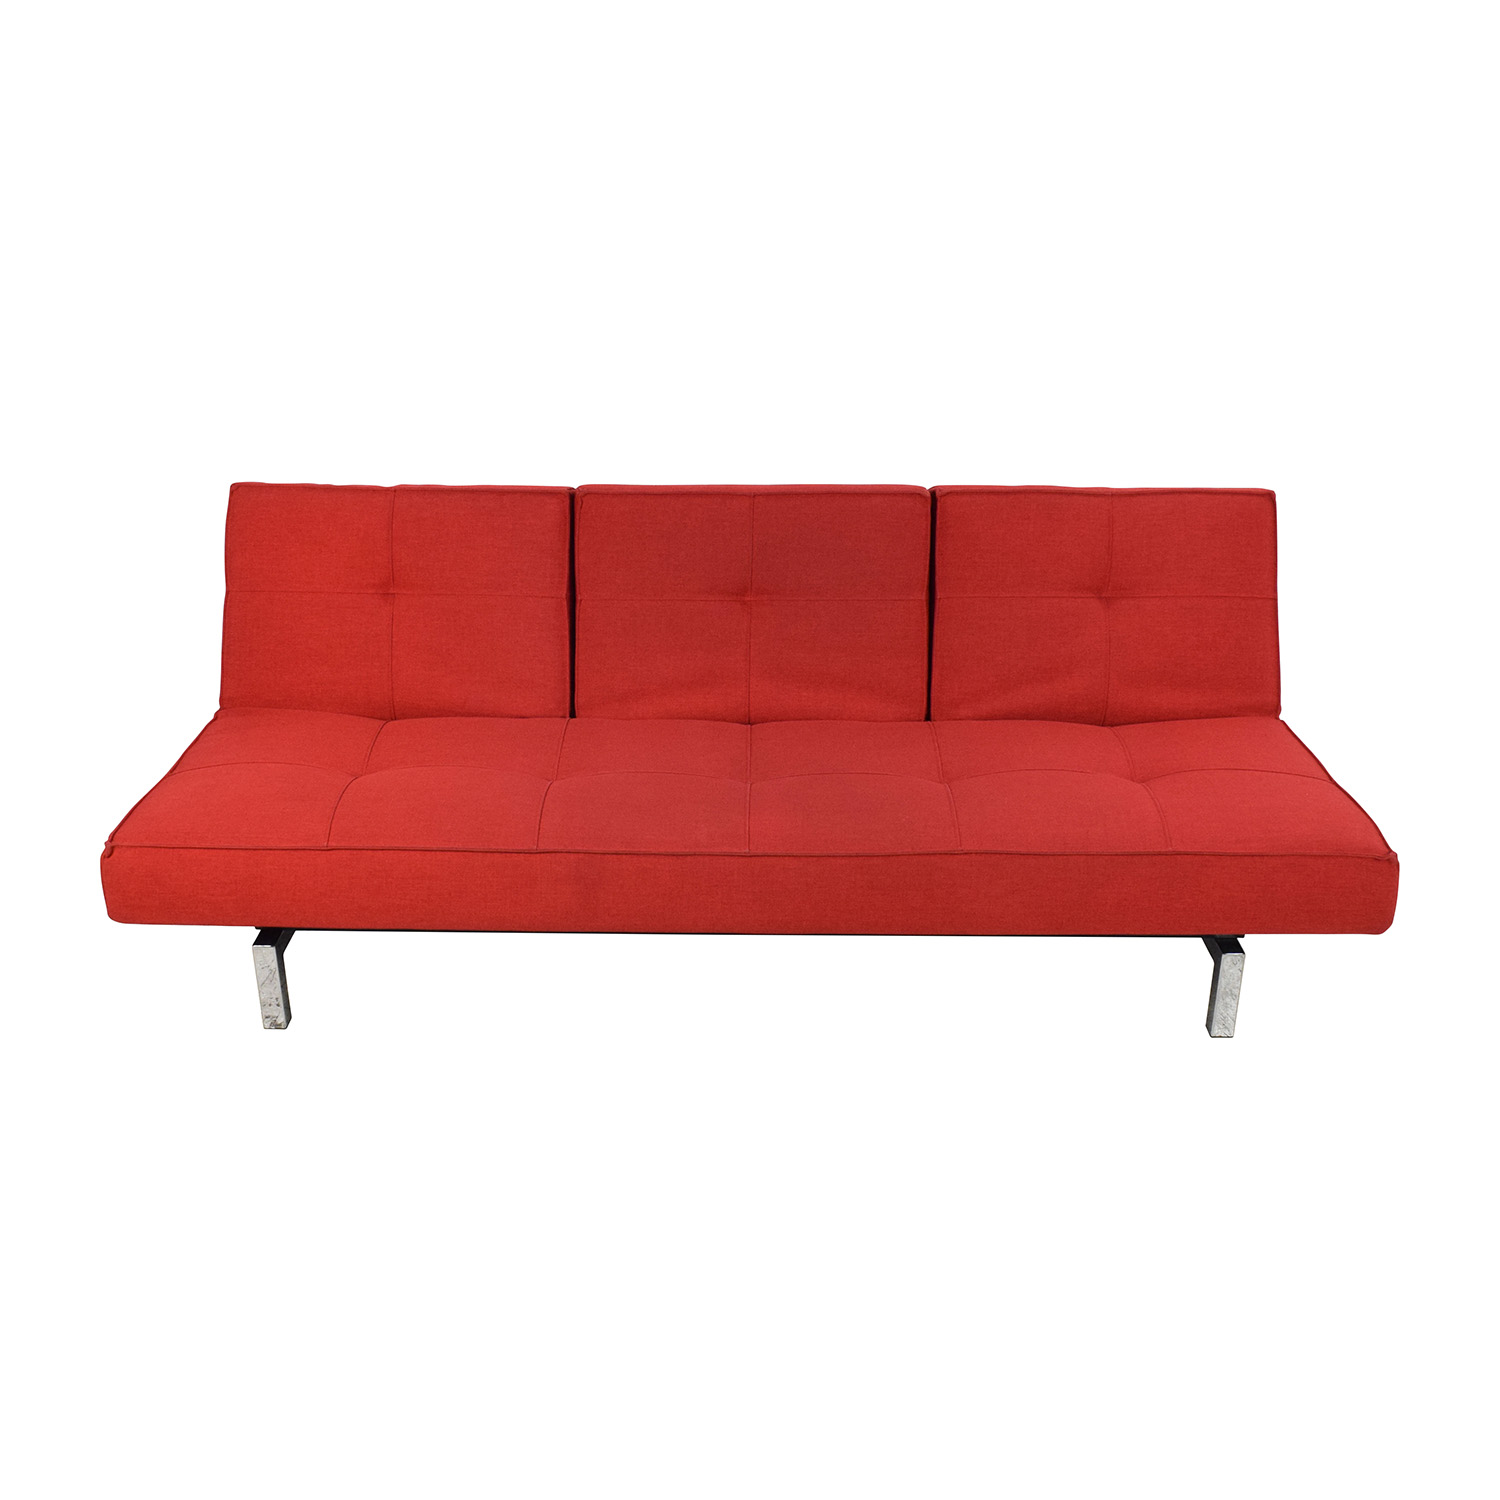 shop Room and Board Room & Board Eden Convertible Red Sofa online